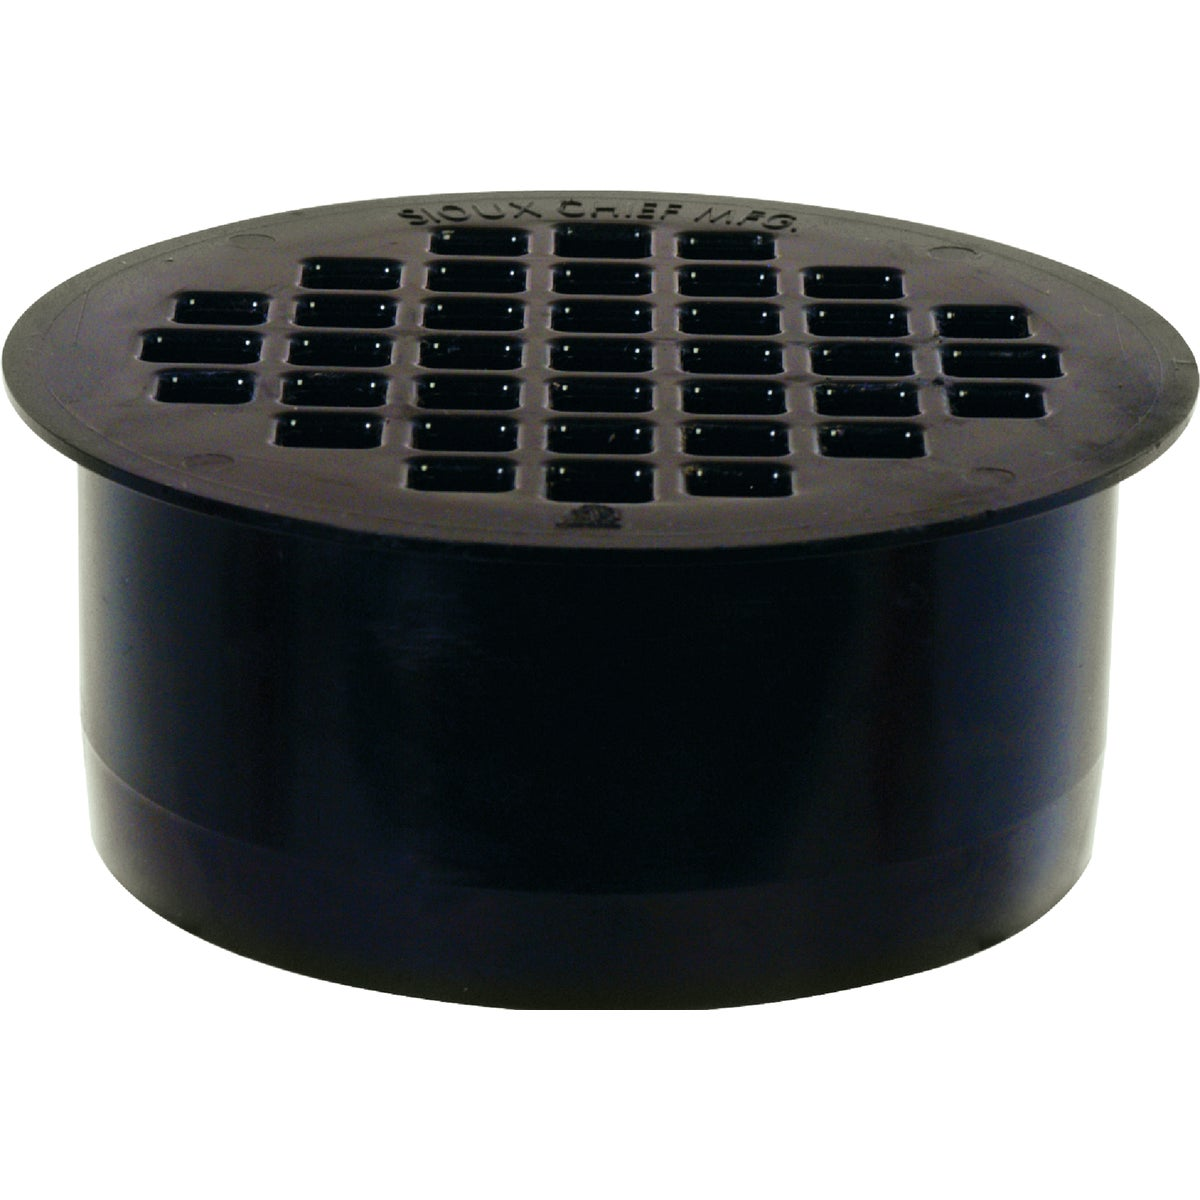 "3"" ABS DRAIN - 845-3APK by Sioux Chief Mfg"